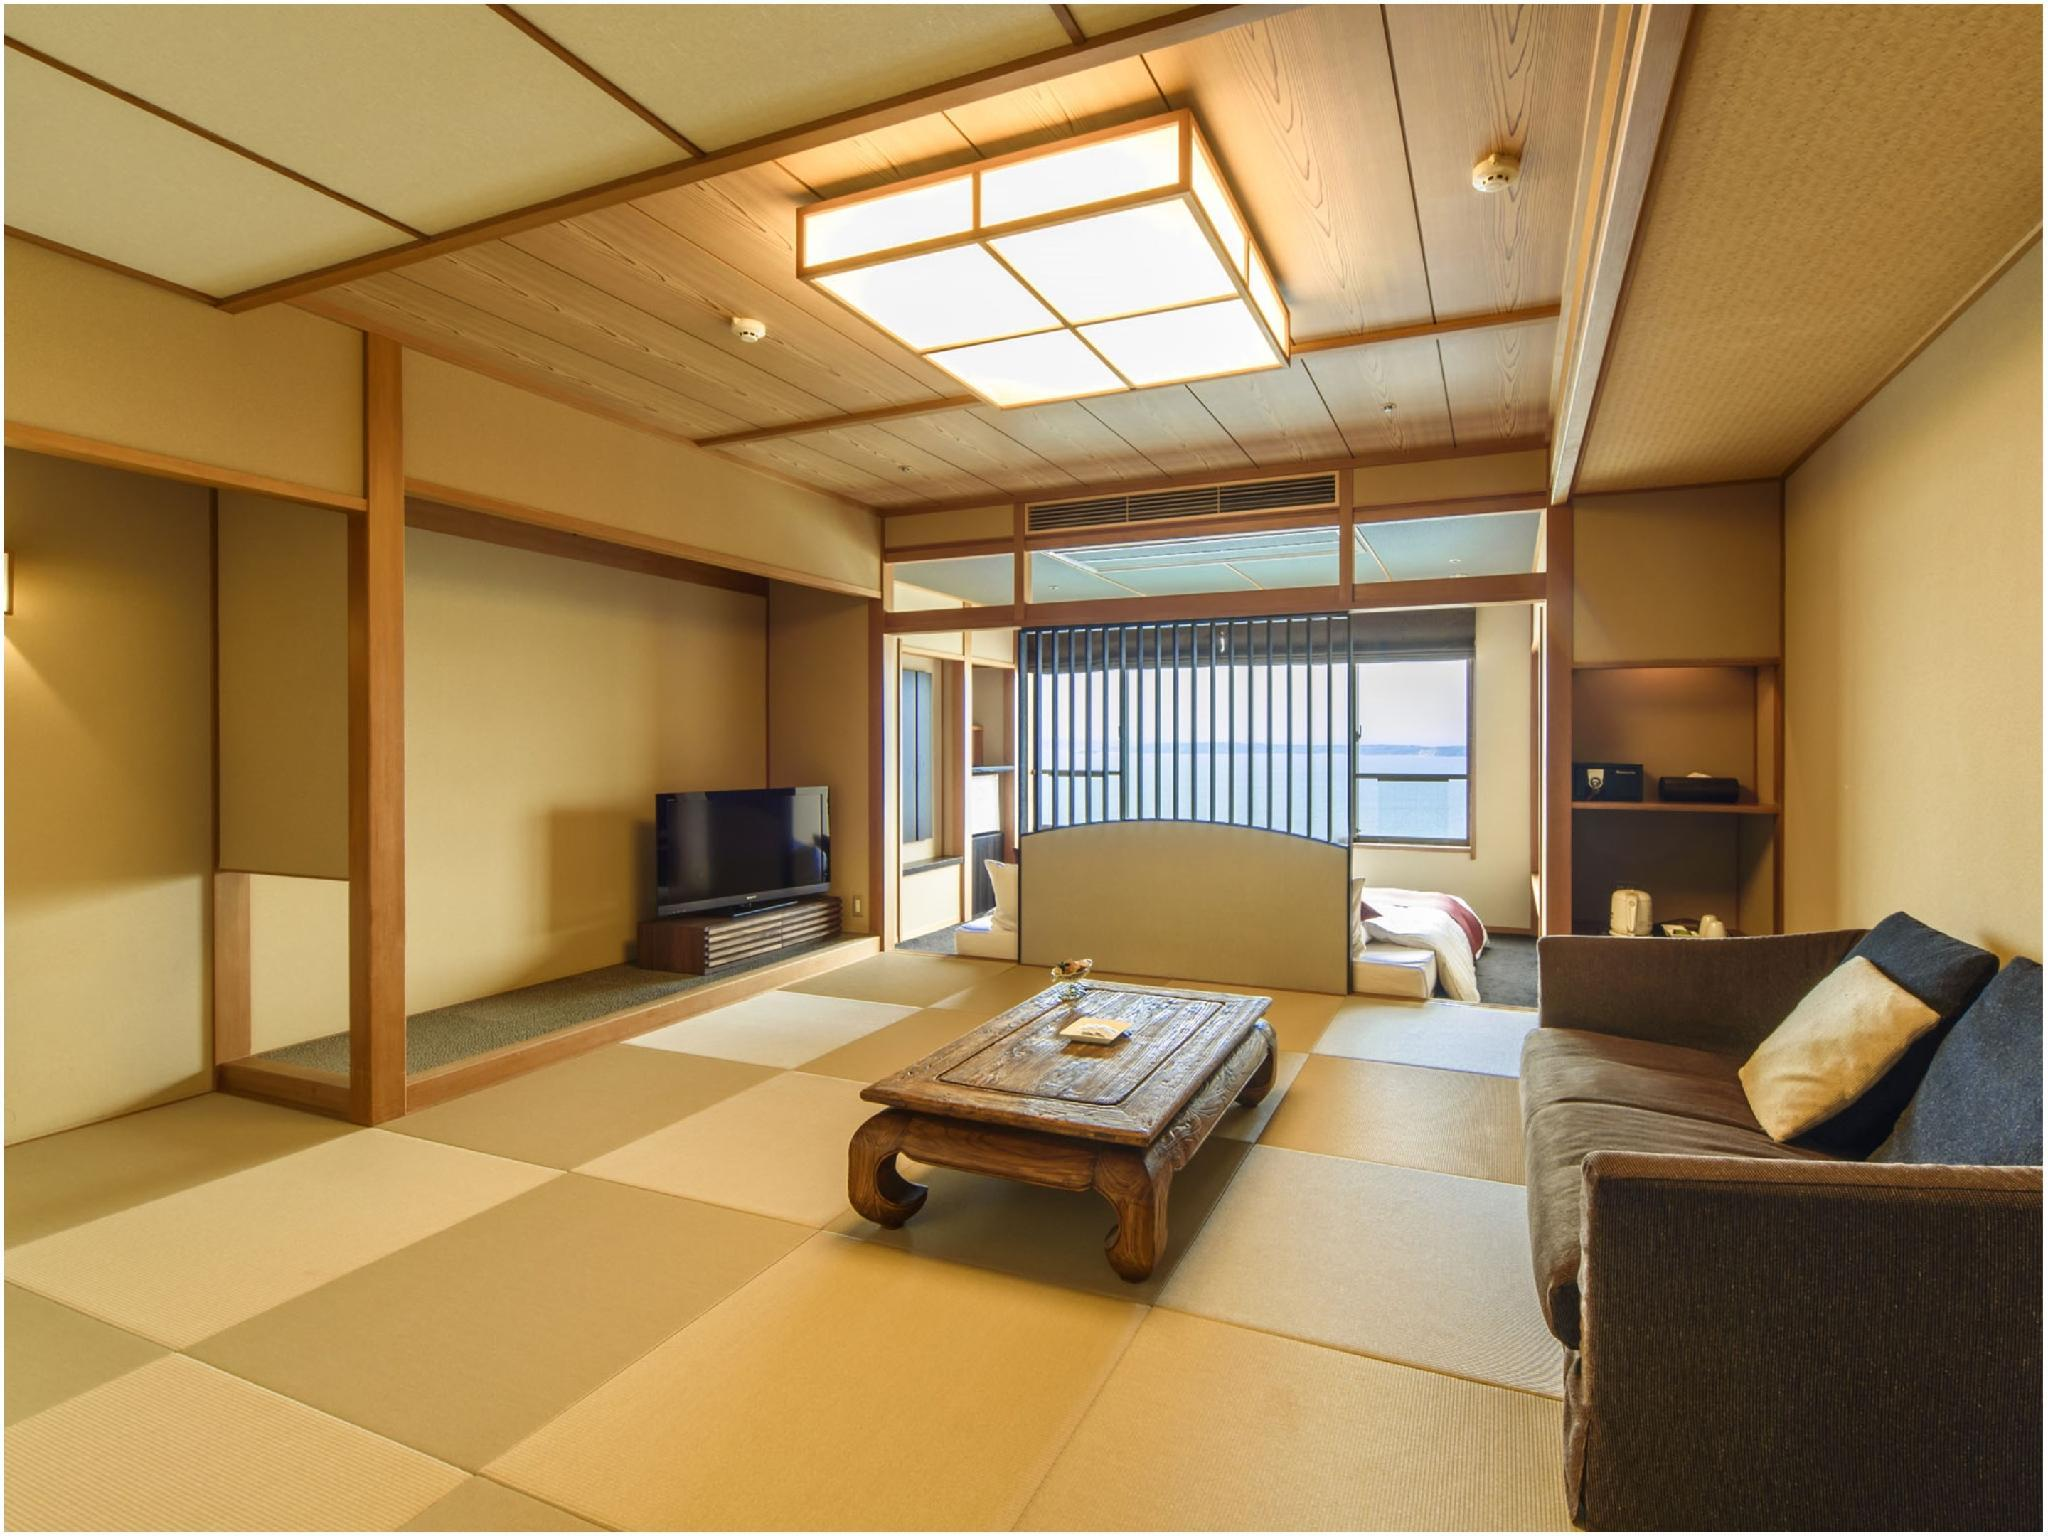 海景 和洋式房(2张床) (Japanese/Western-style Room (2 Beds, Ocean View))